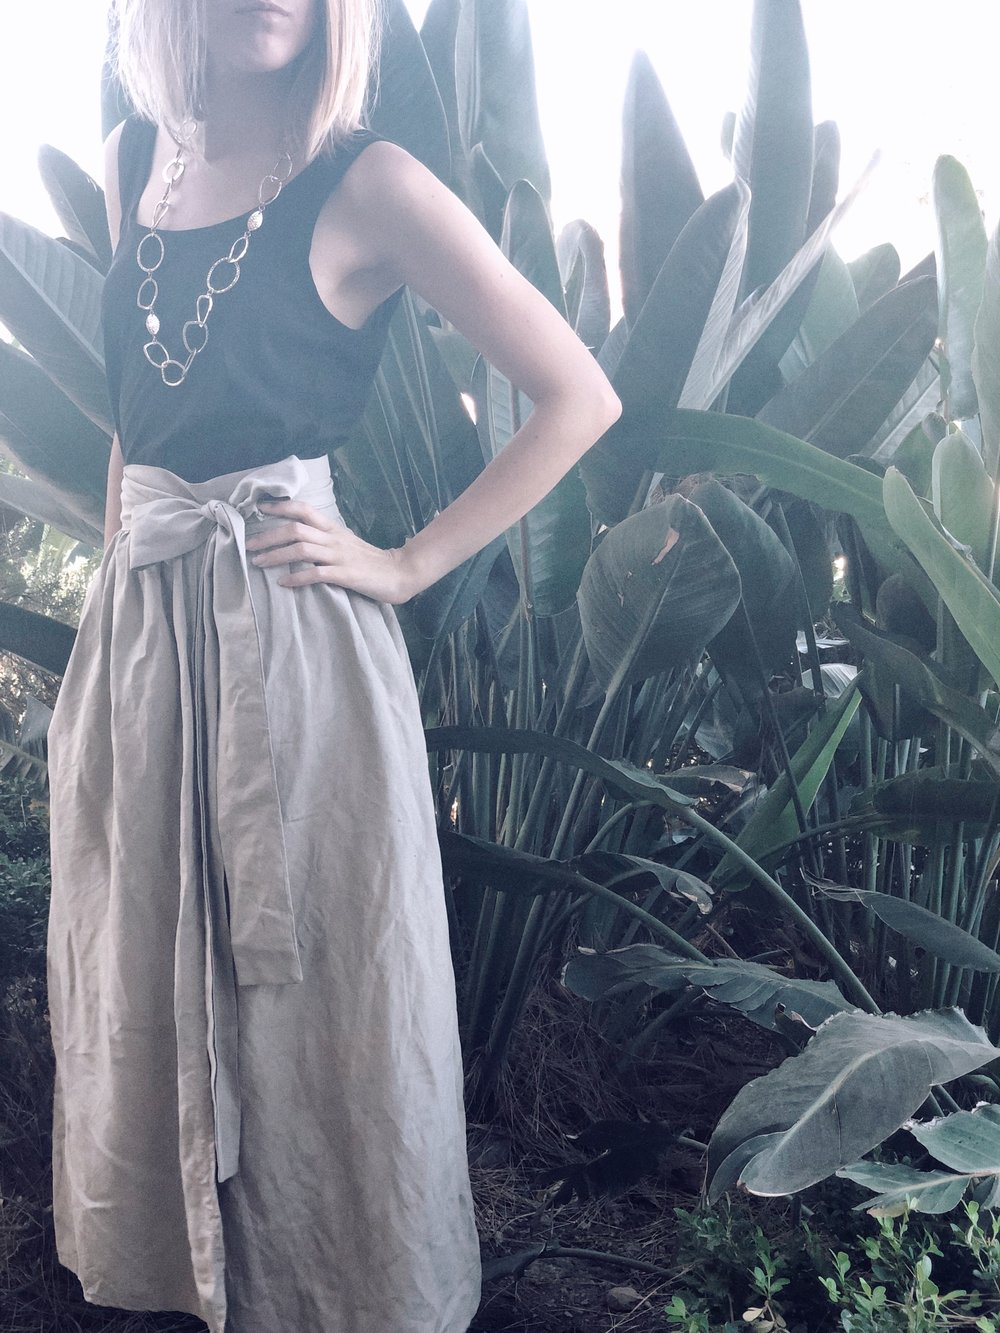 Tank- Cuyana; Skirt- Ozma of California; Necklace- Oldie but Goodie (not pictured but wearing are my ZouXou mules)